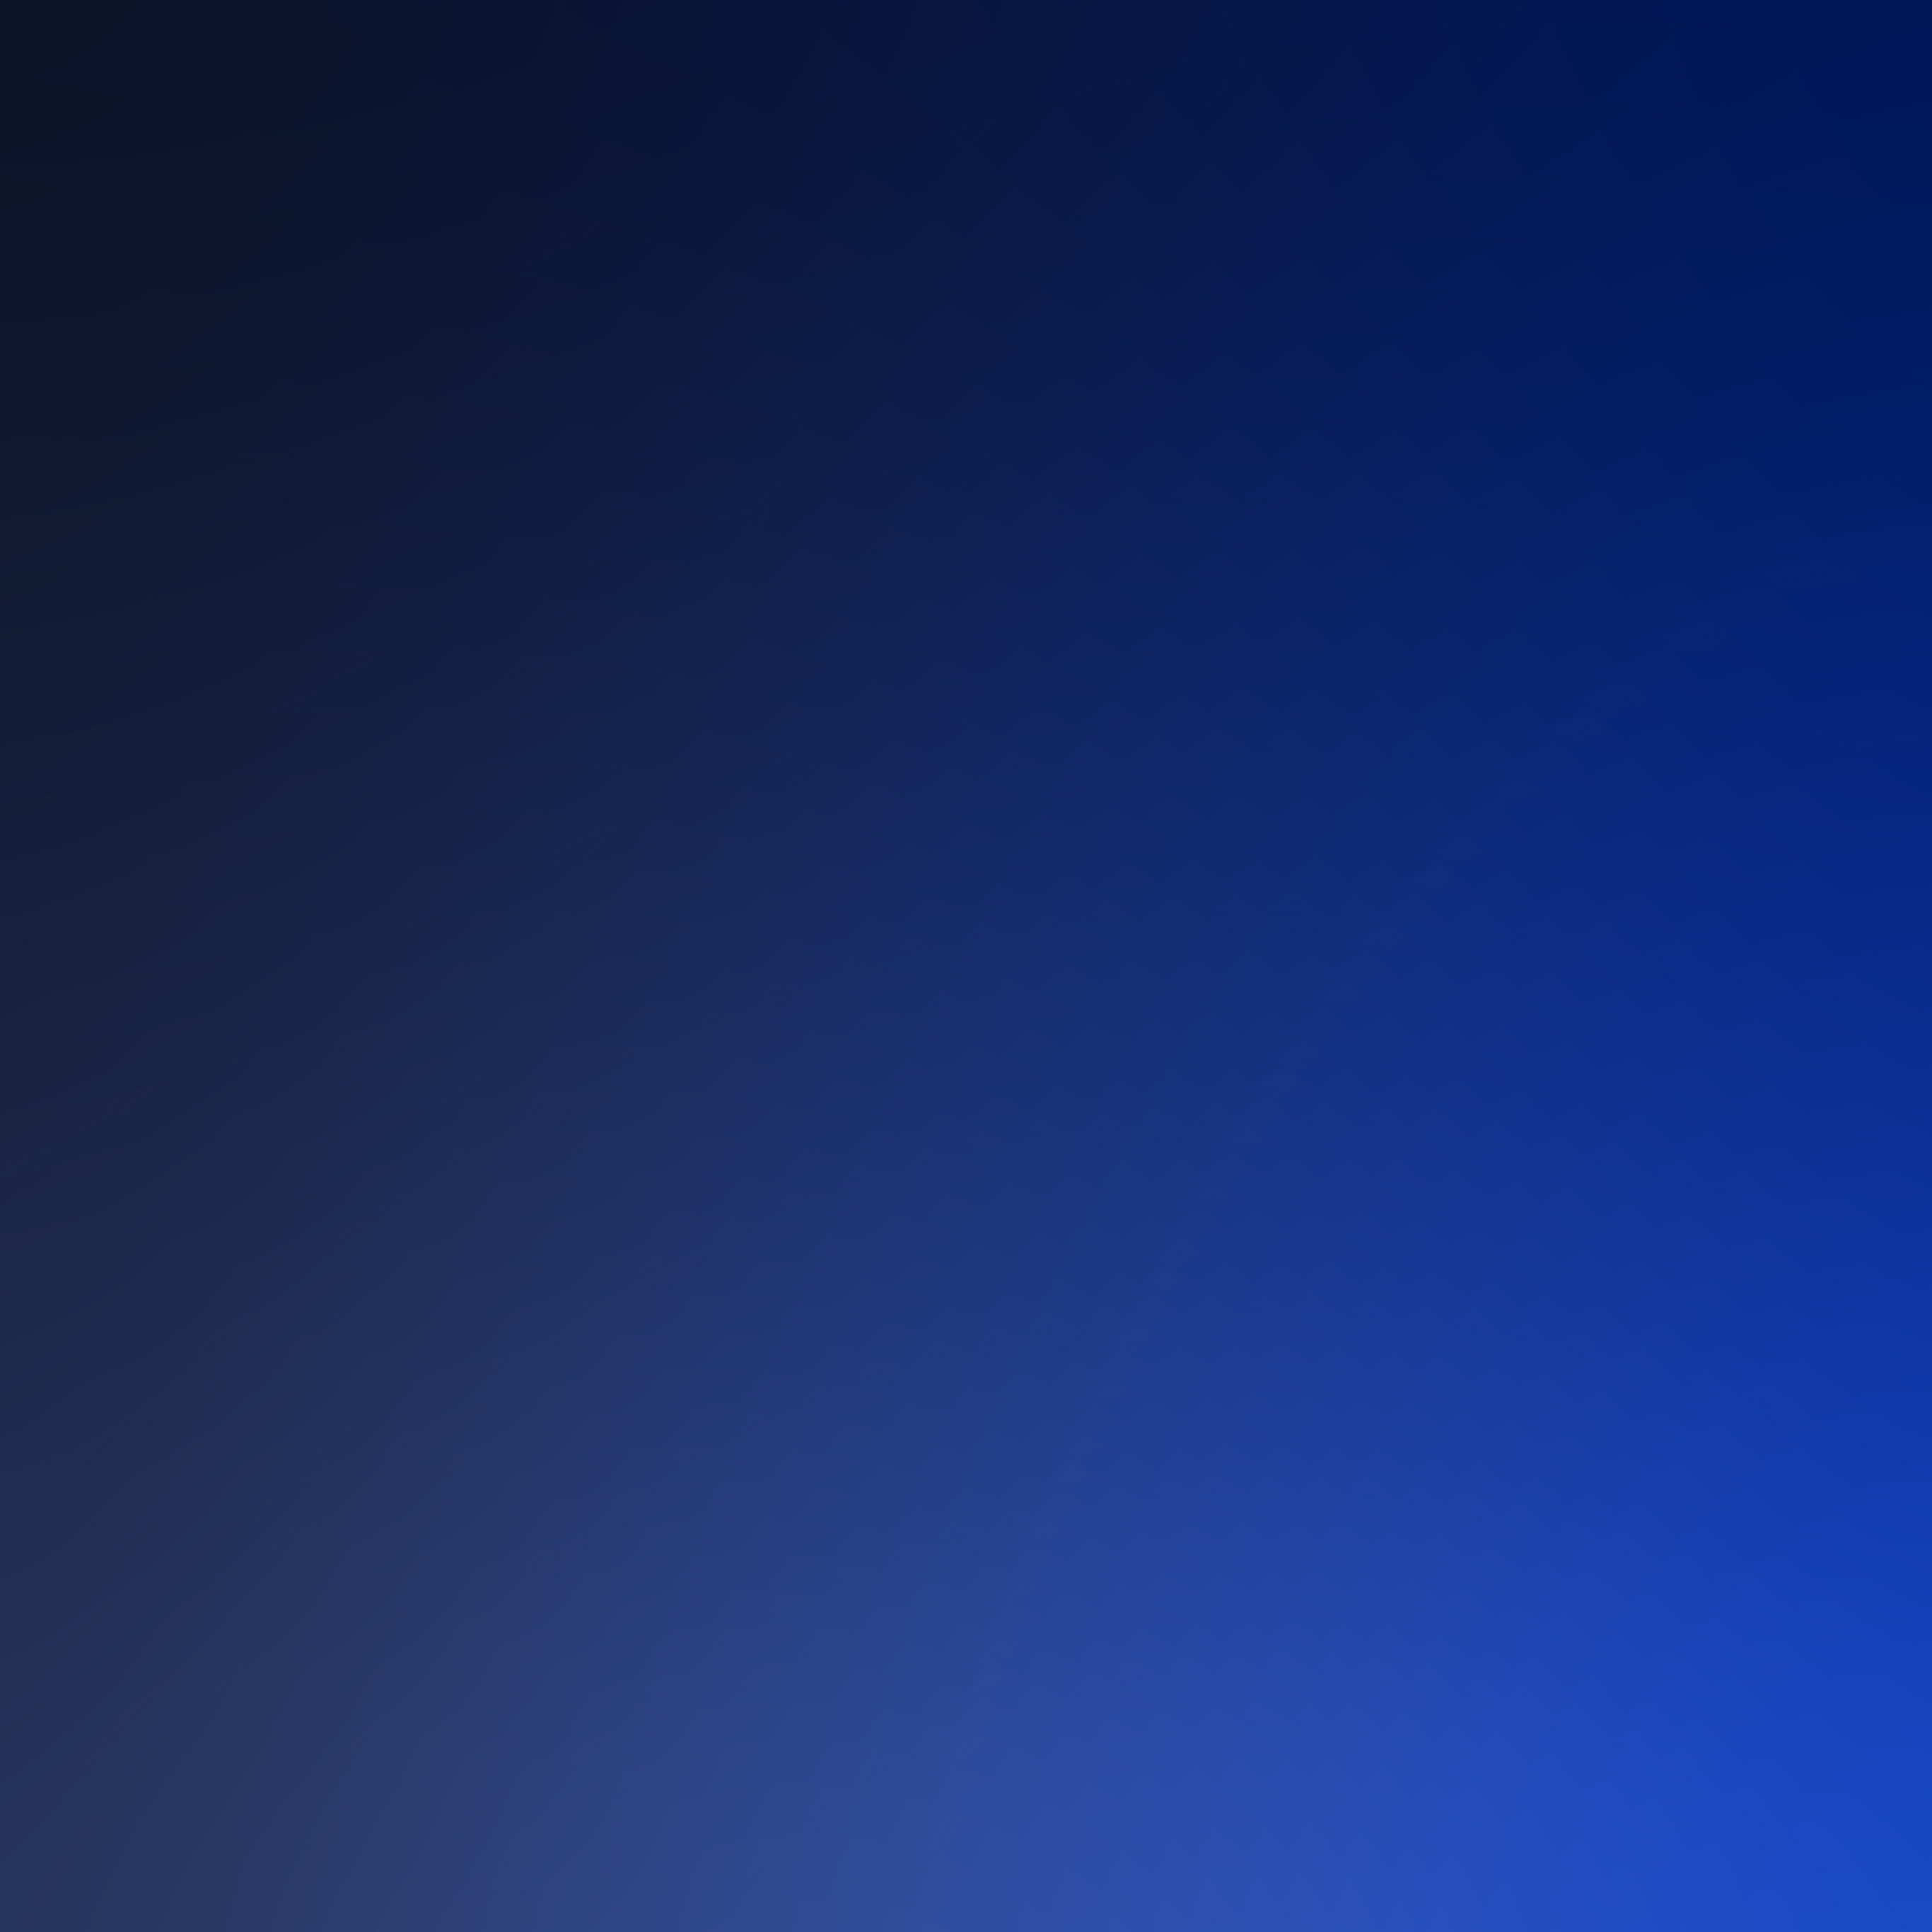 Android wallpaper sf03 dark blue ocean - Dark blue wallpaper hd for android ...